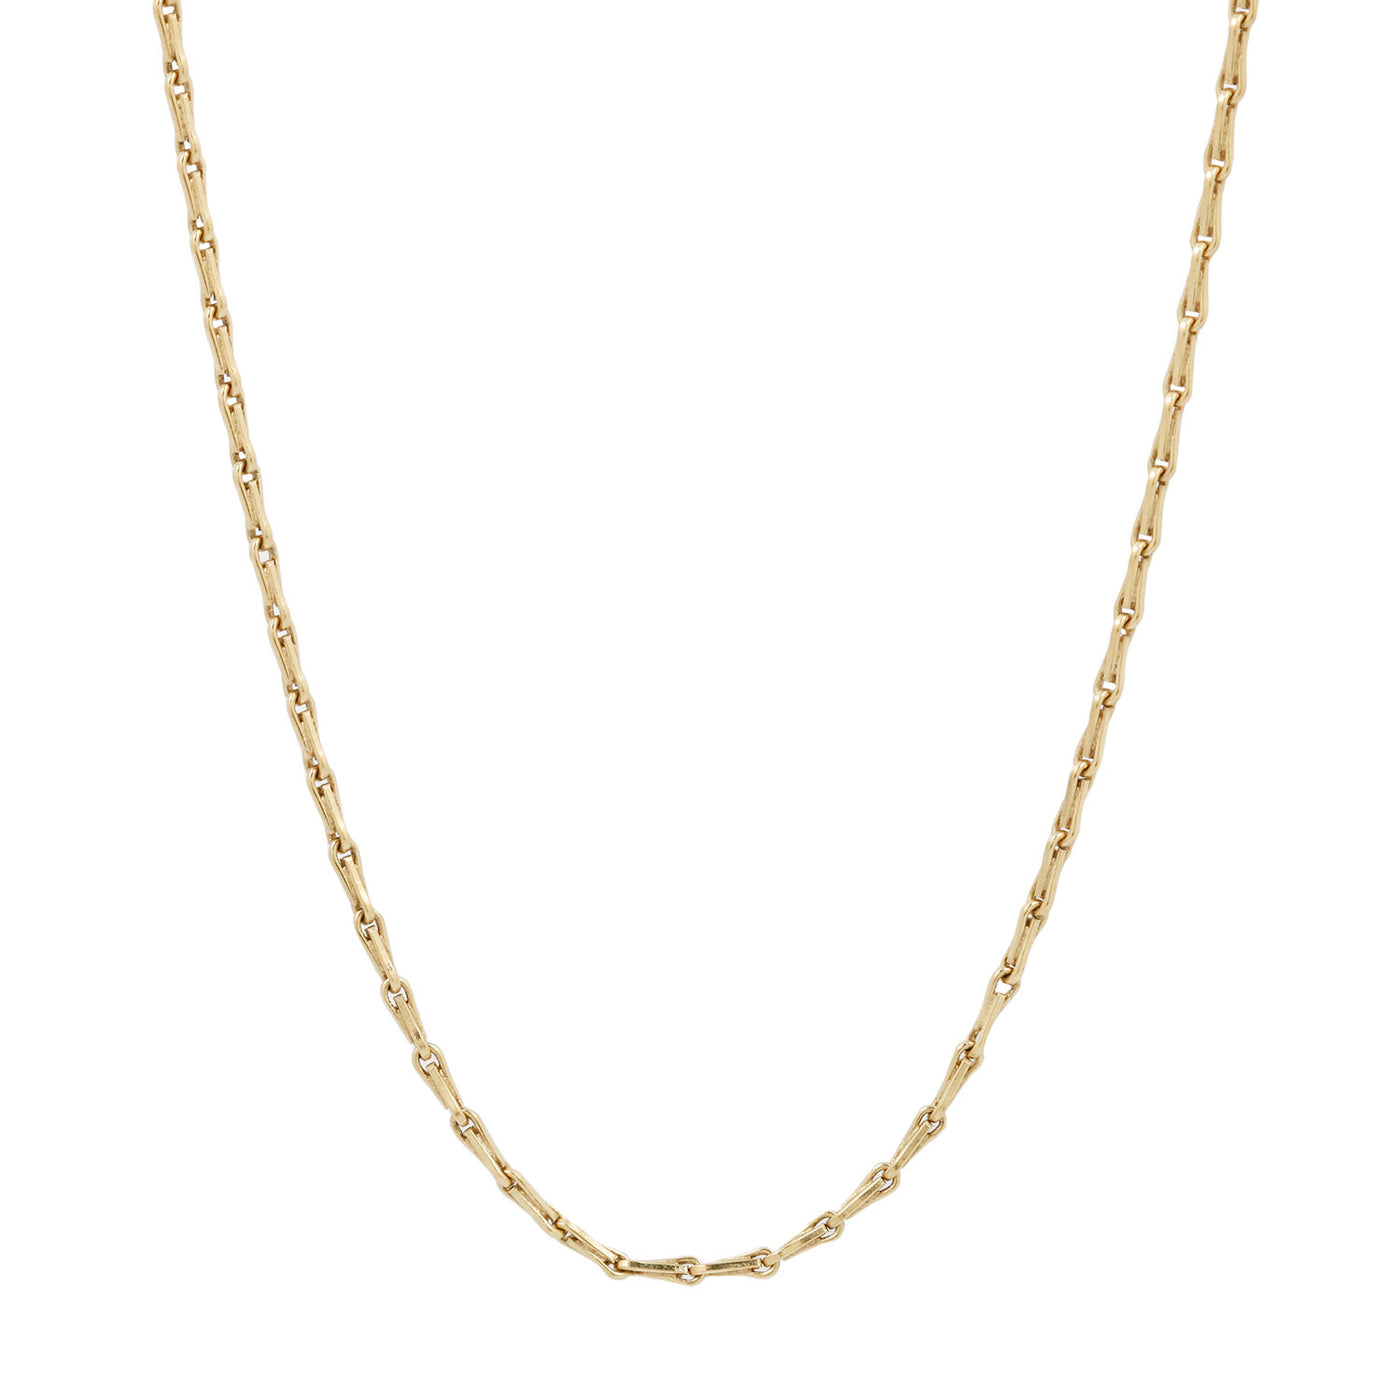 Lauren Wolf Jewelry Gold Barley Corn Chain